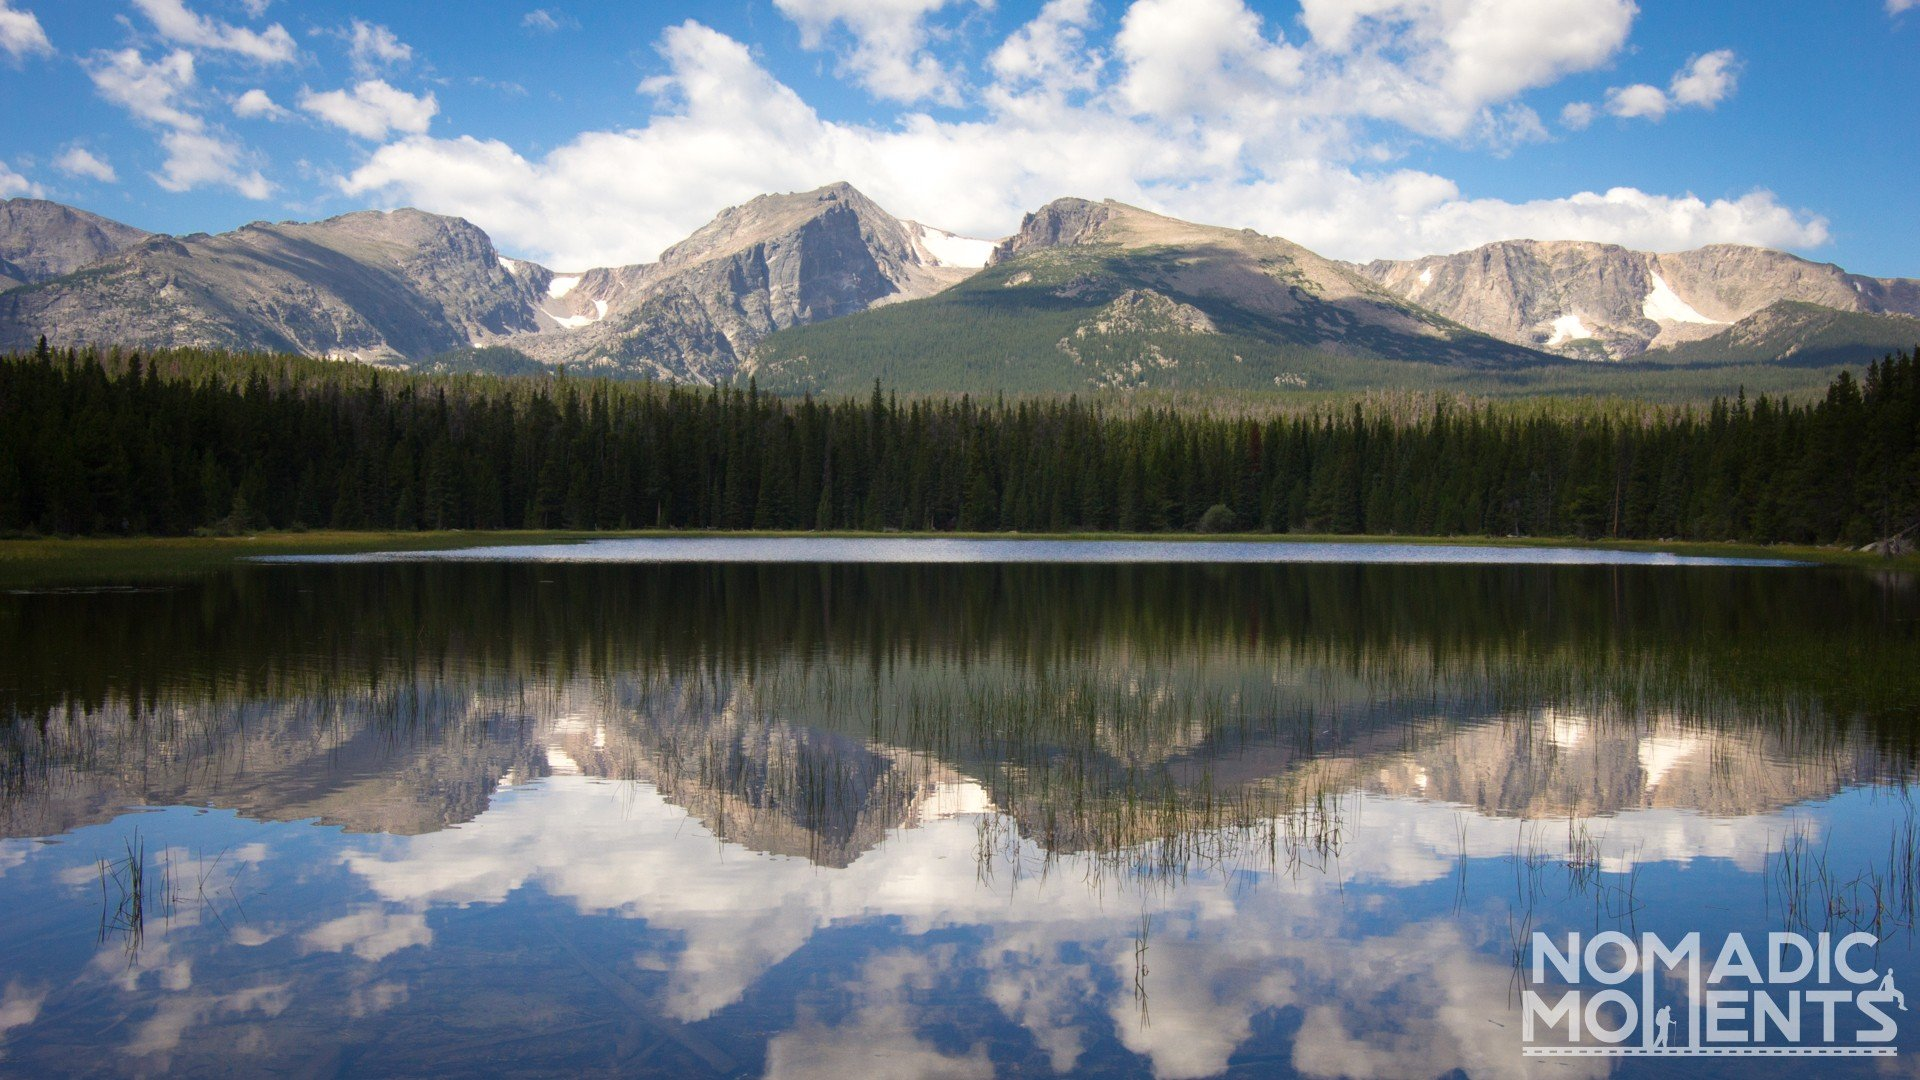 Bierstadt Lake with reflections of the surrounding mountain peaks.